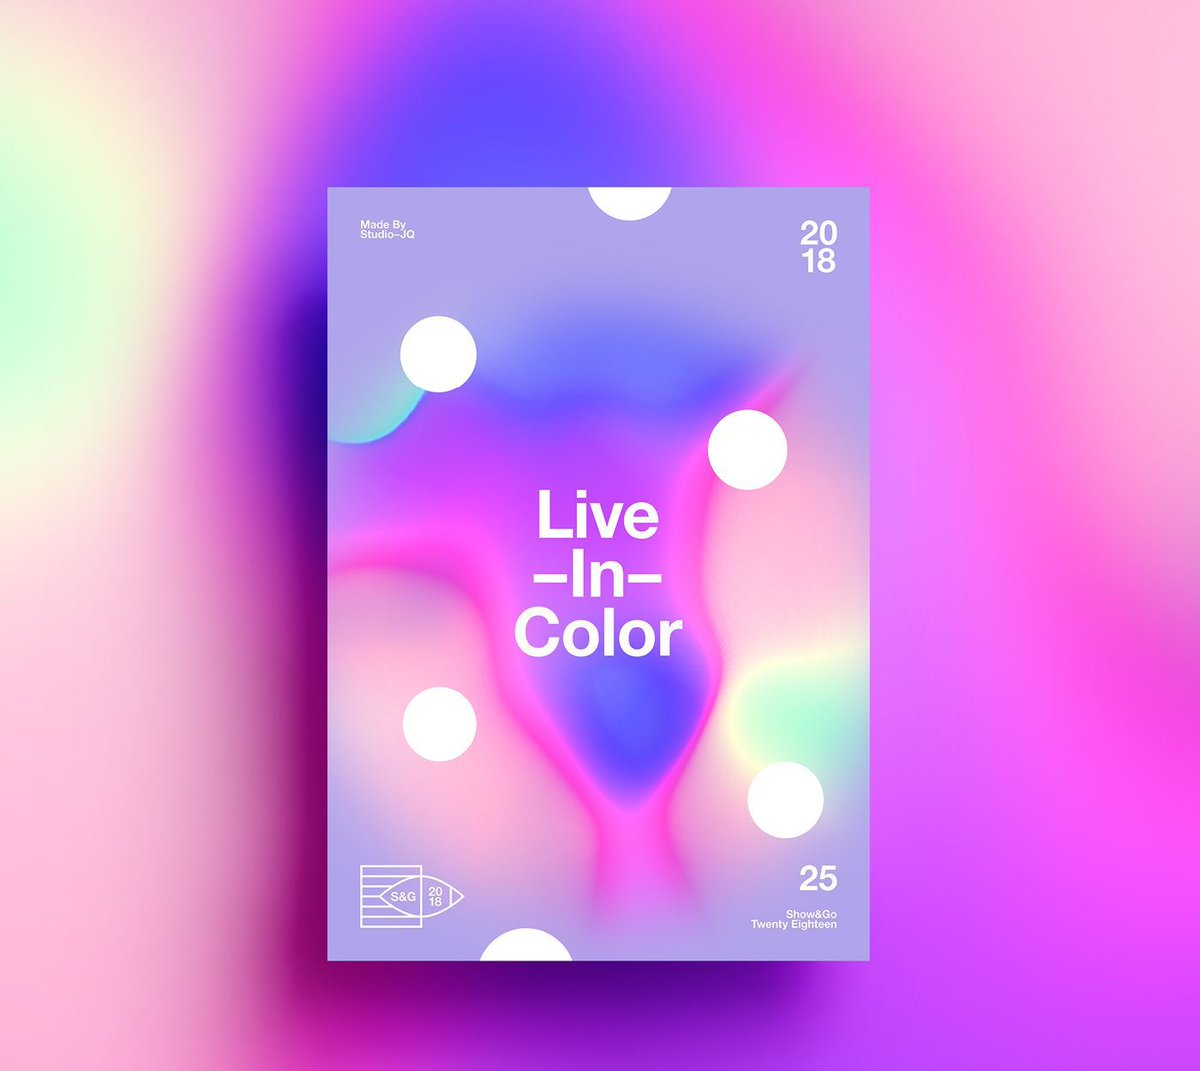 Artur Konariev On Twitter Poster Collection 2018 Tco I7dy8OGNQw Design Graphicdesign Interface Userinterface Userexperience Dribbble